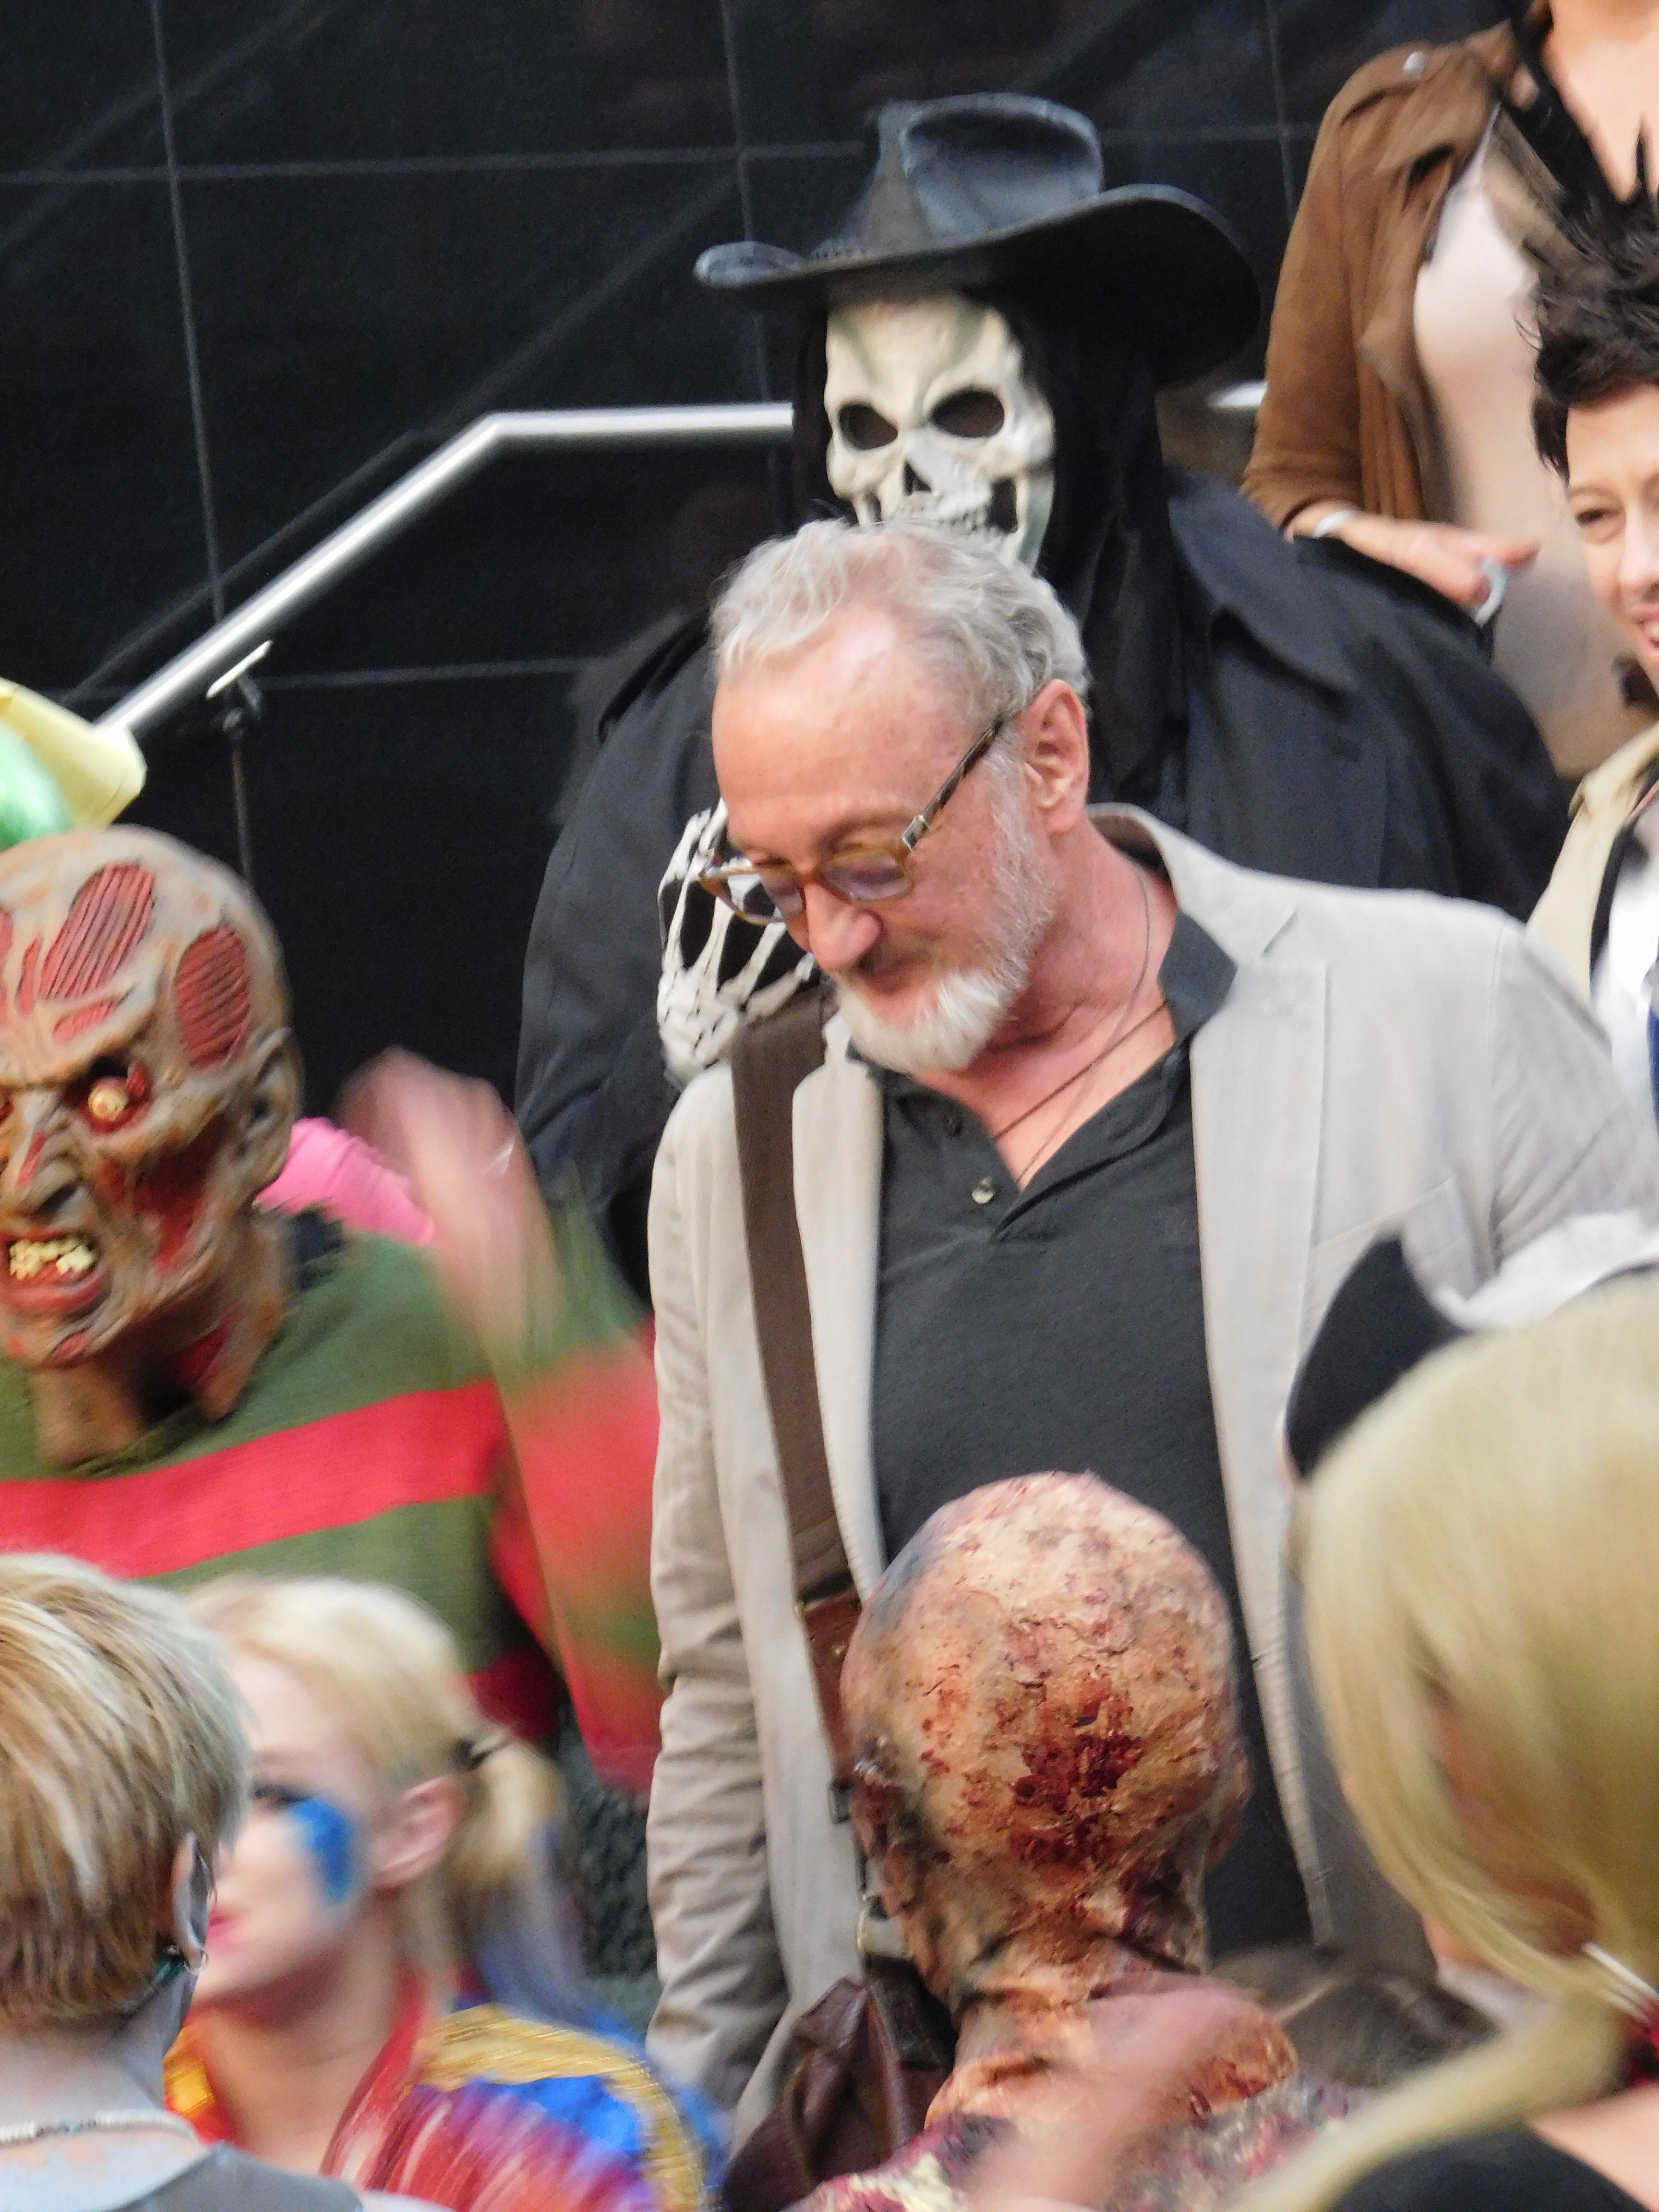 SLCCd2.058 - Either that's a really good mask, or it's really Robert Englund!